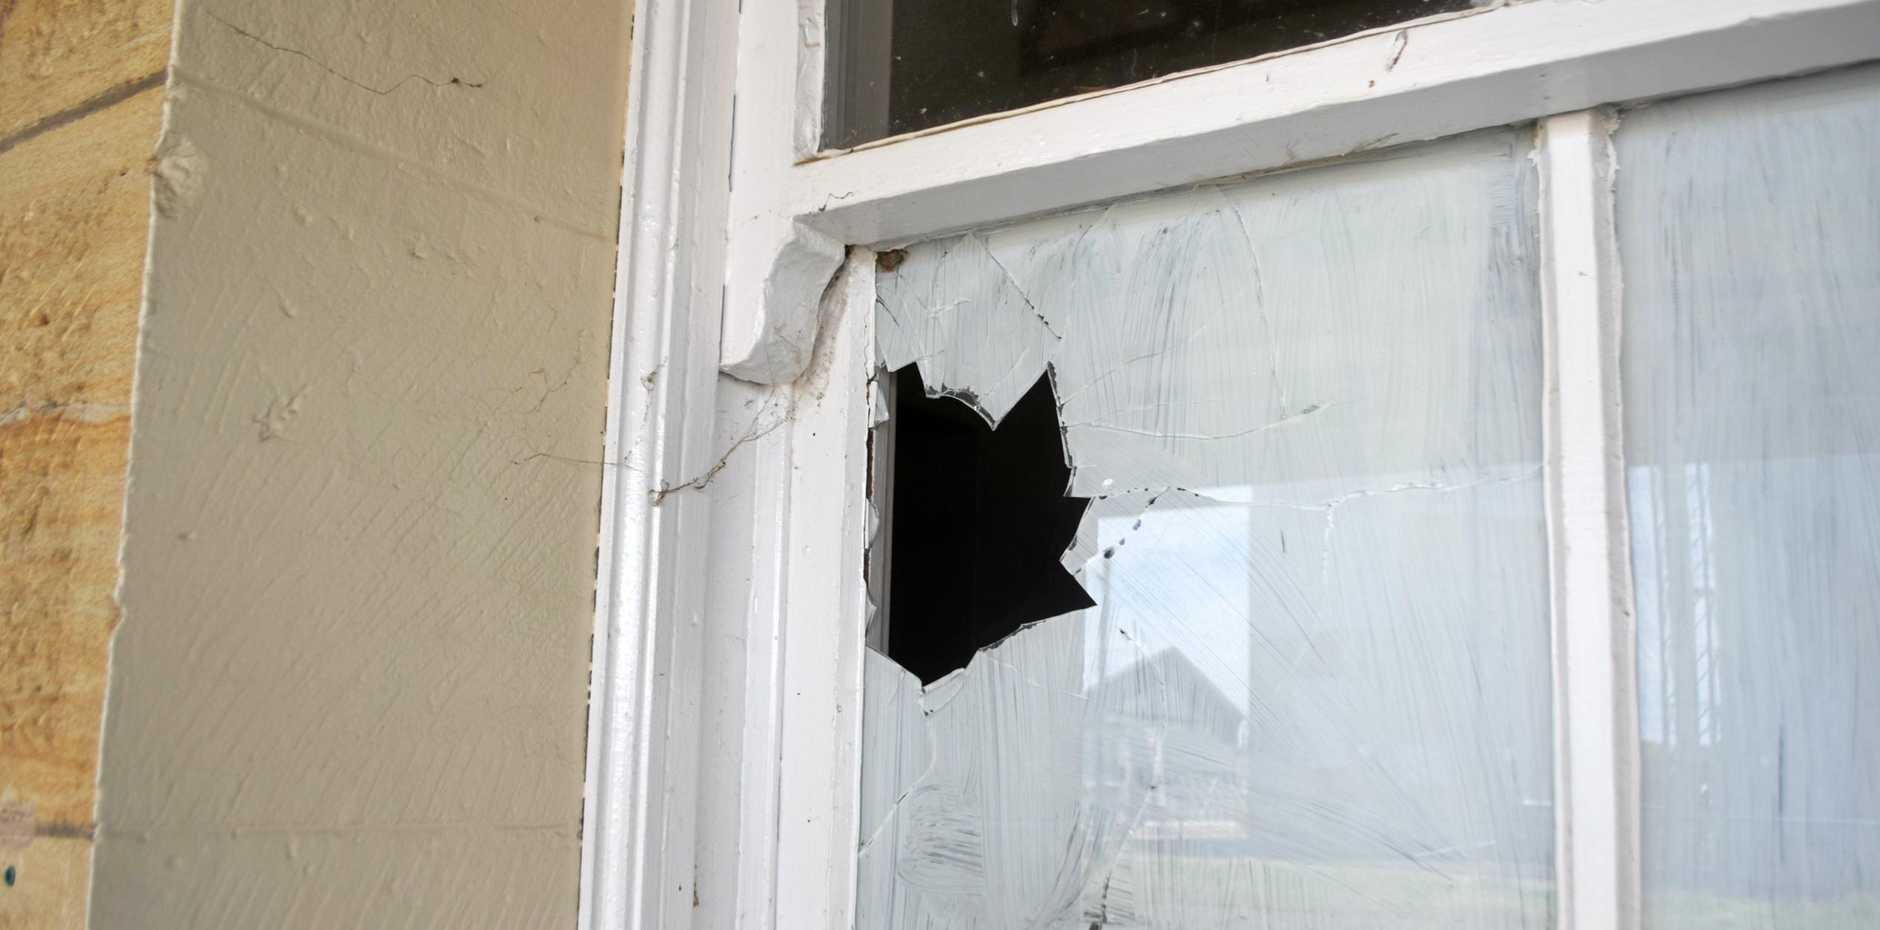 The Kingaroy man was required to pay for the two broken windows.